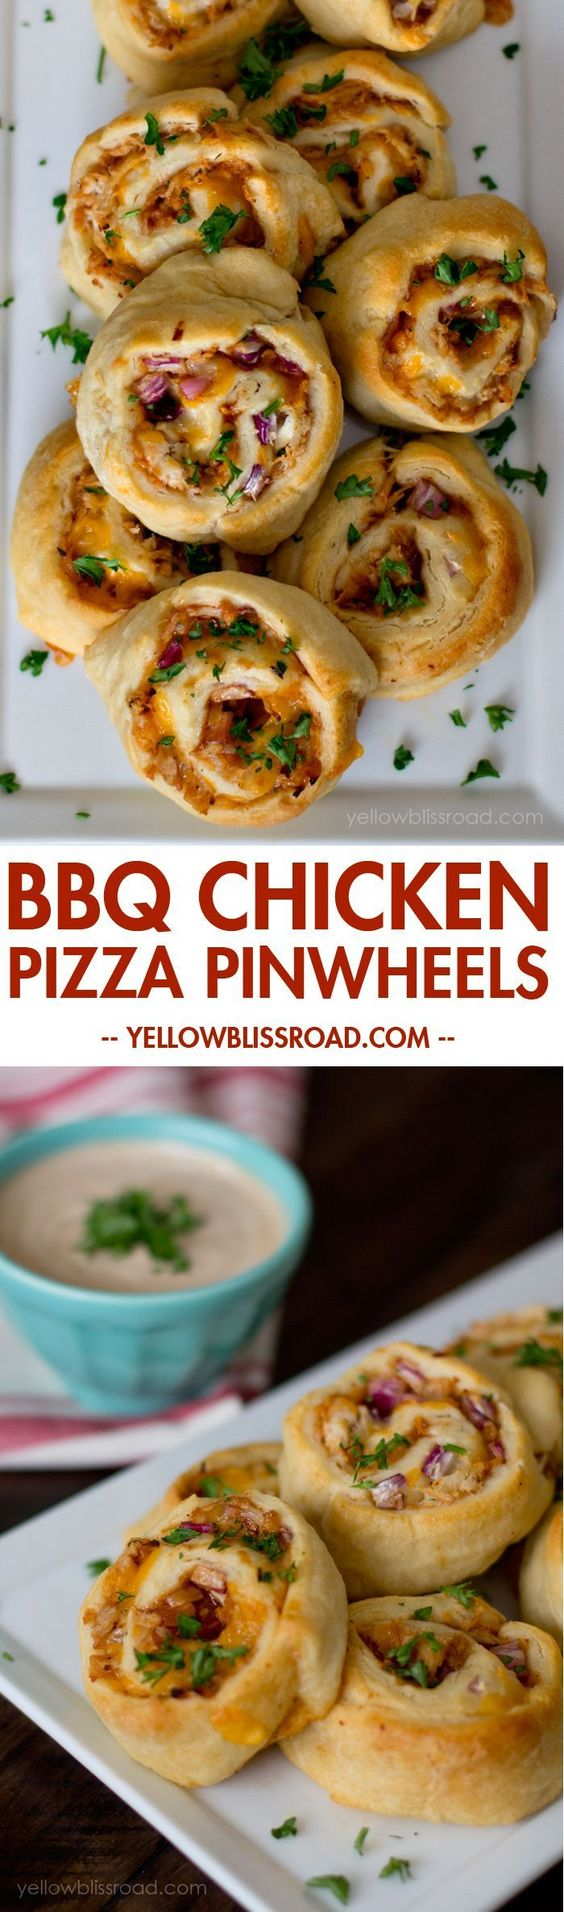 Chicken pizza, Pizza pinwheels and Barbecue chicken pizza on Pinterest